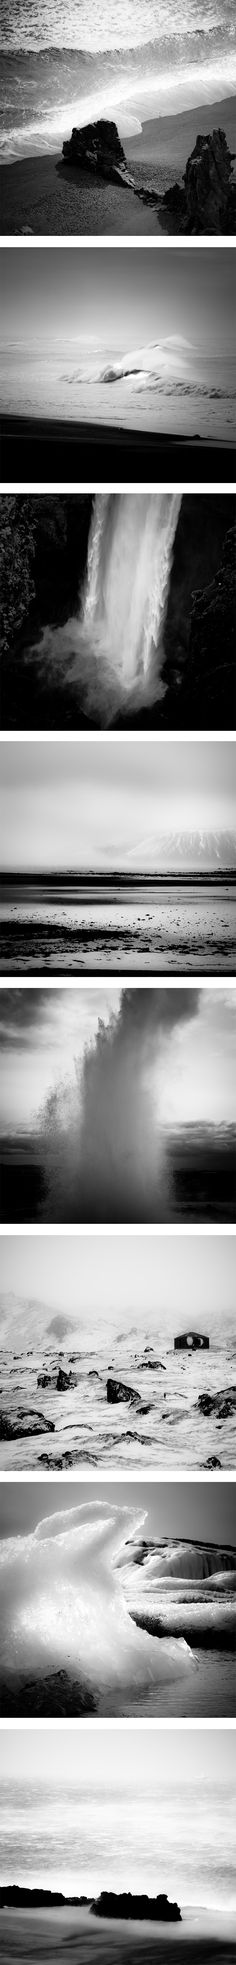 ABSTRACT LANDSCAPES – Iceland // A photo series by NORTHLANDSCAPES, @JanWaider – Unique and authentic imagery of Nordic landscapes.